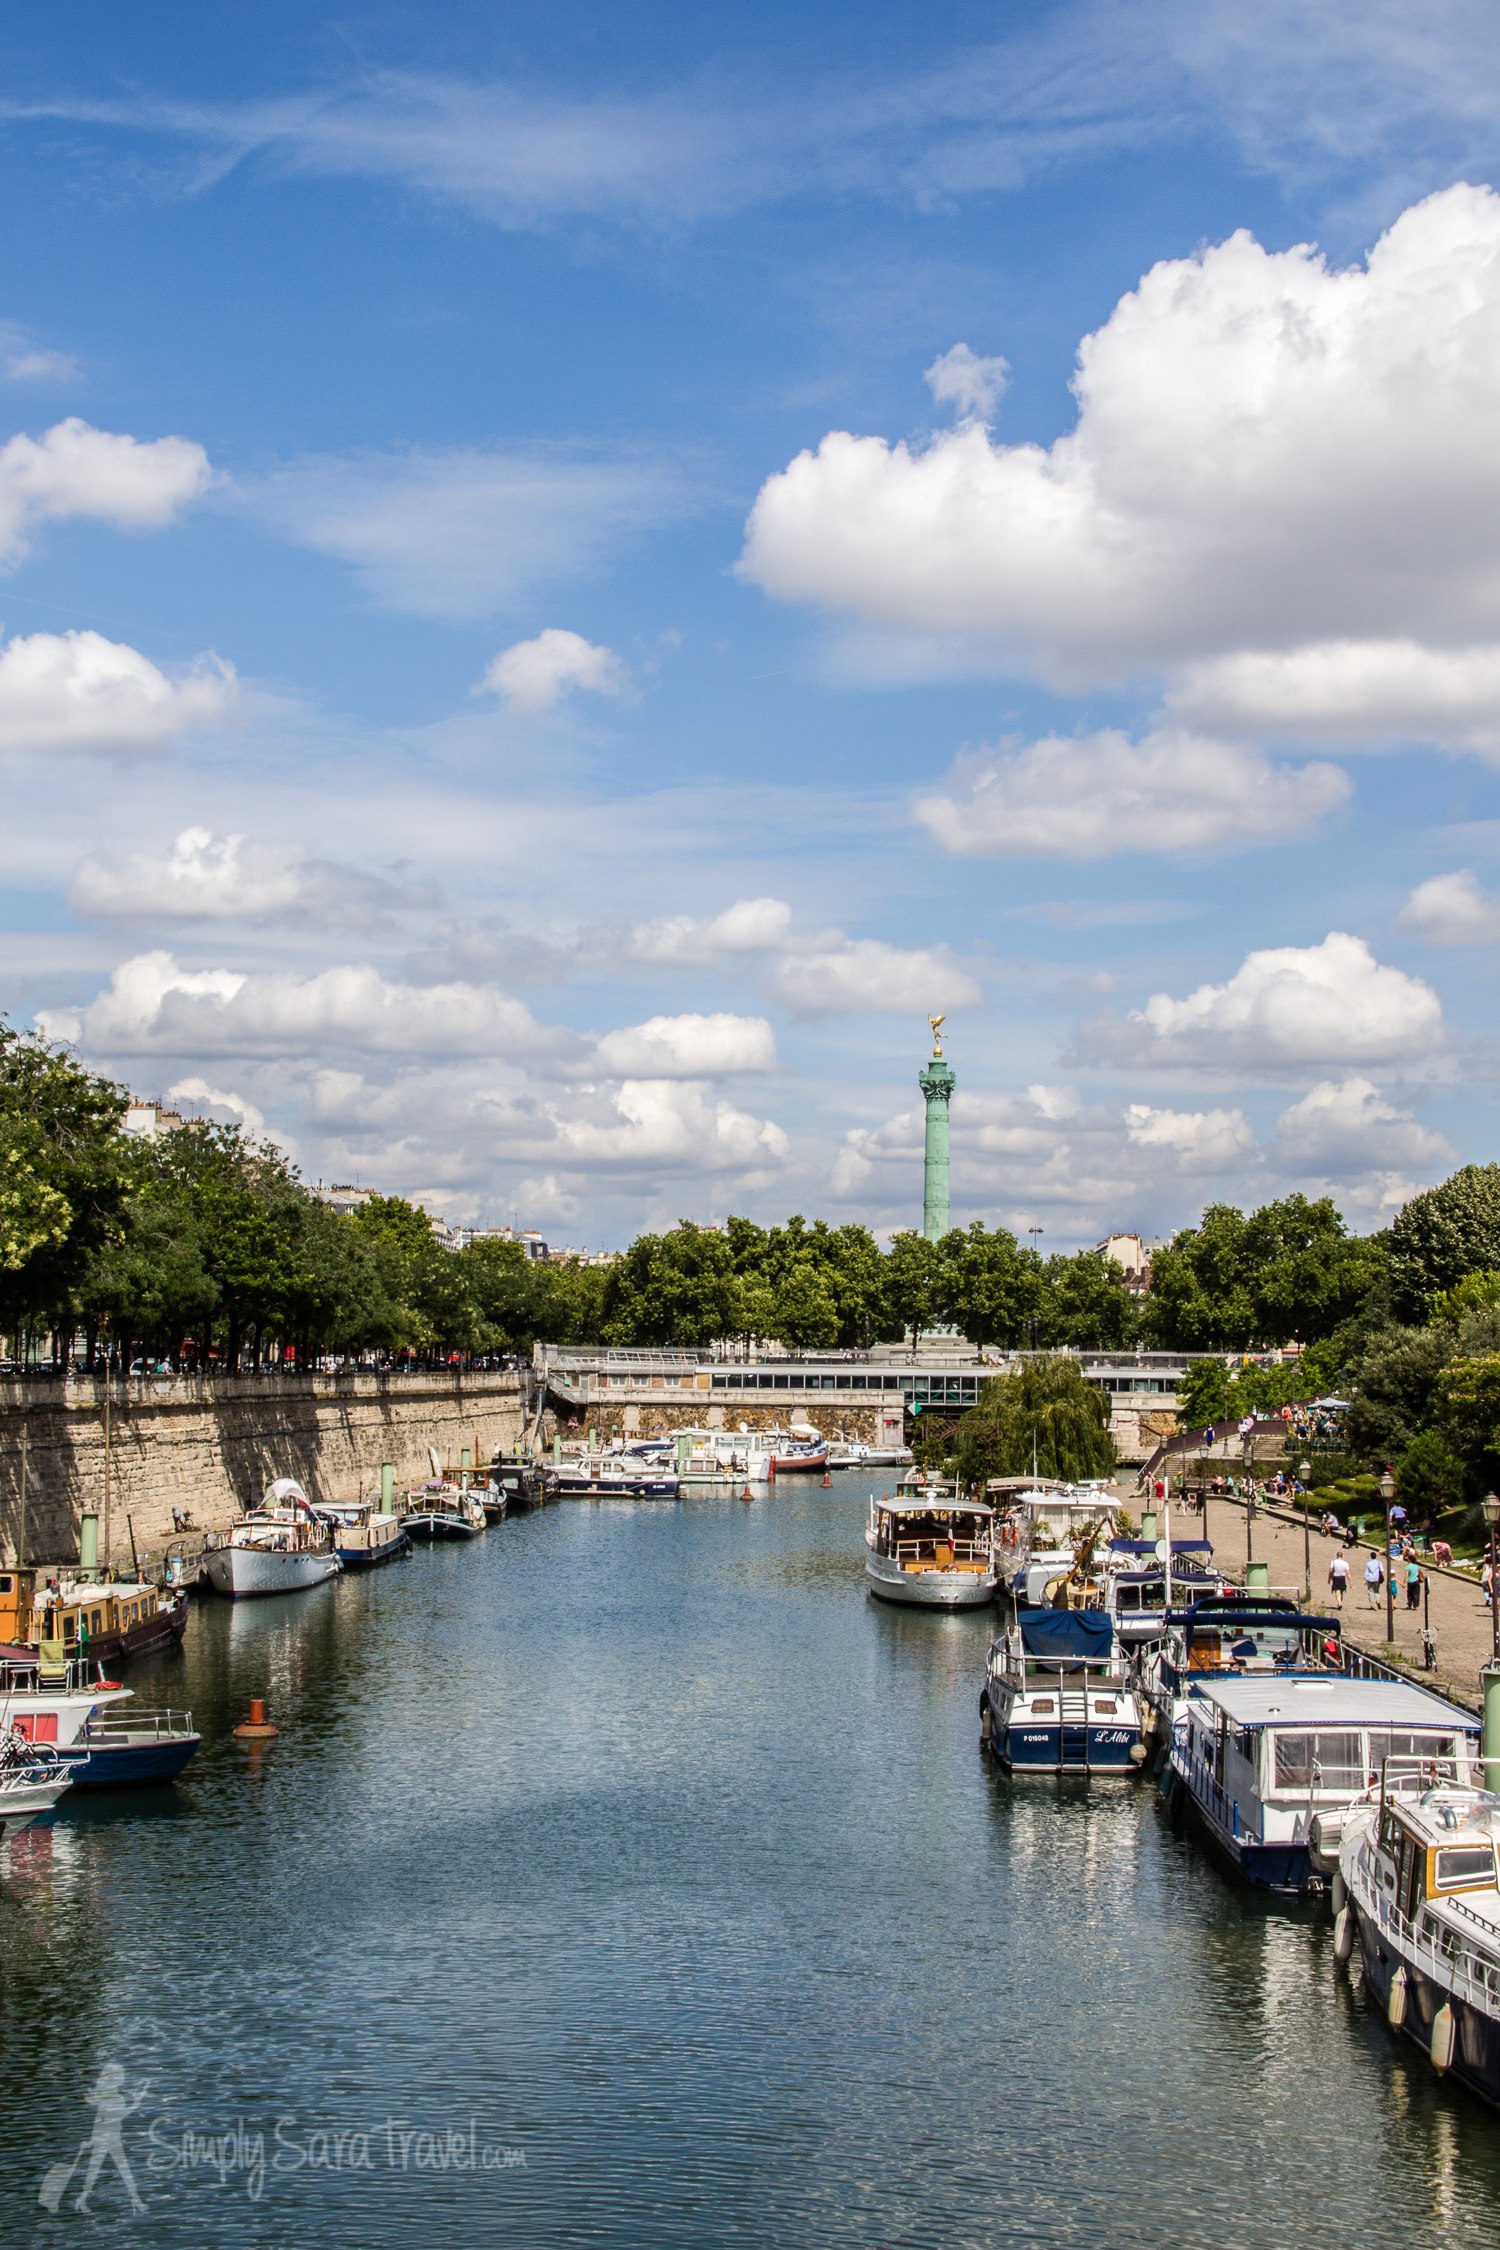 Boats at Port de l'Arsenal with a view of Bastille